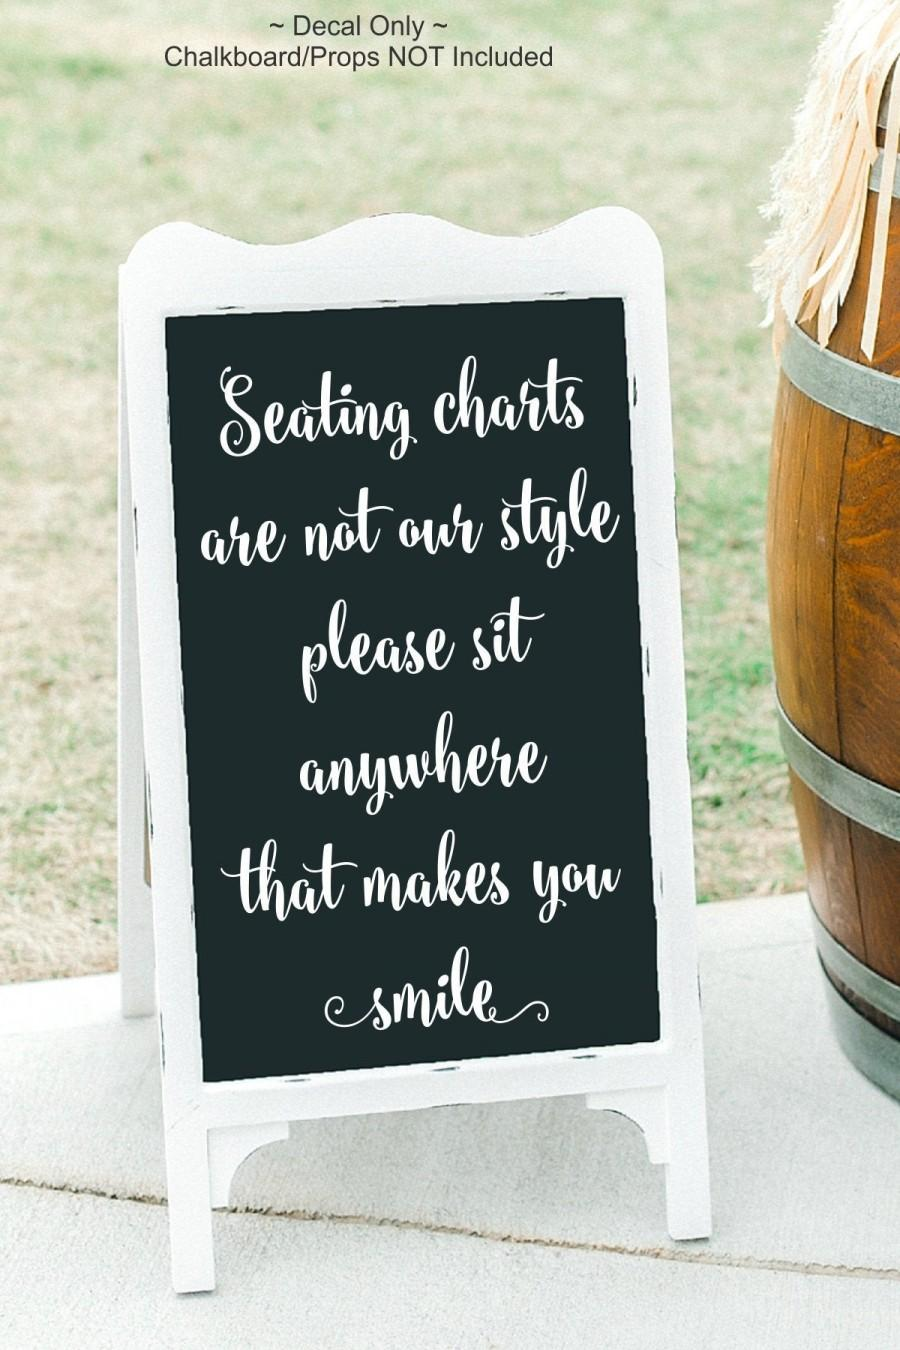 Свадьба - Pick A Seat Decal Pick A Seat Vinyl Seating Decal Seating Charts Are Not Our Style Please Sit Anywhere Choose A Seat Decal